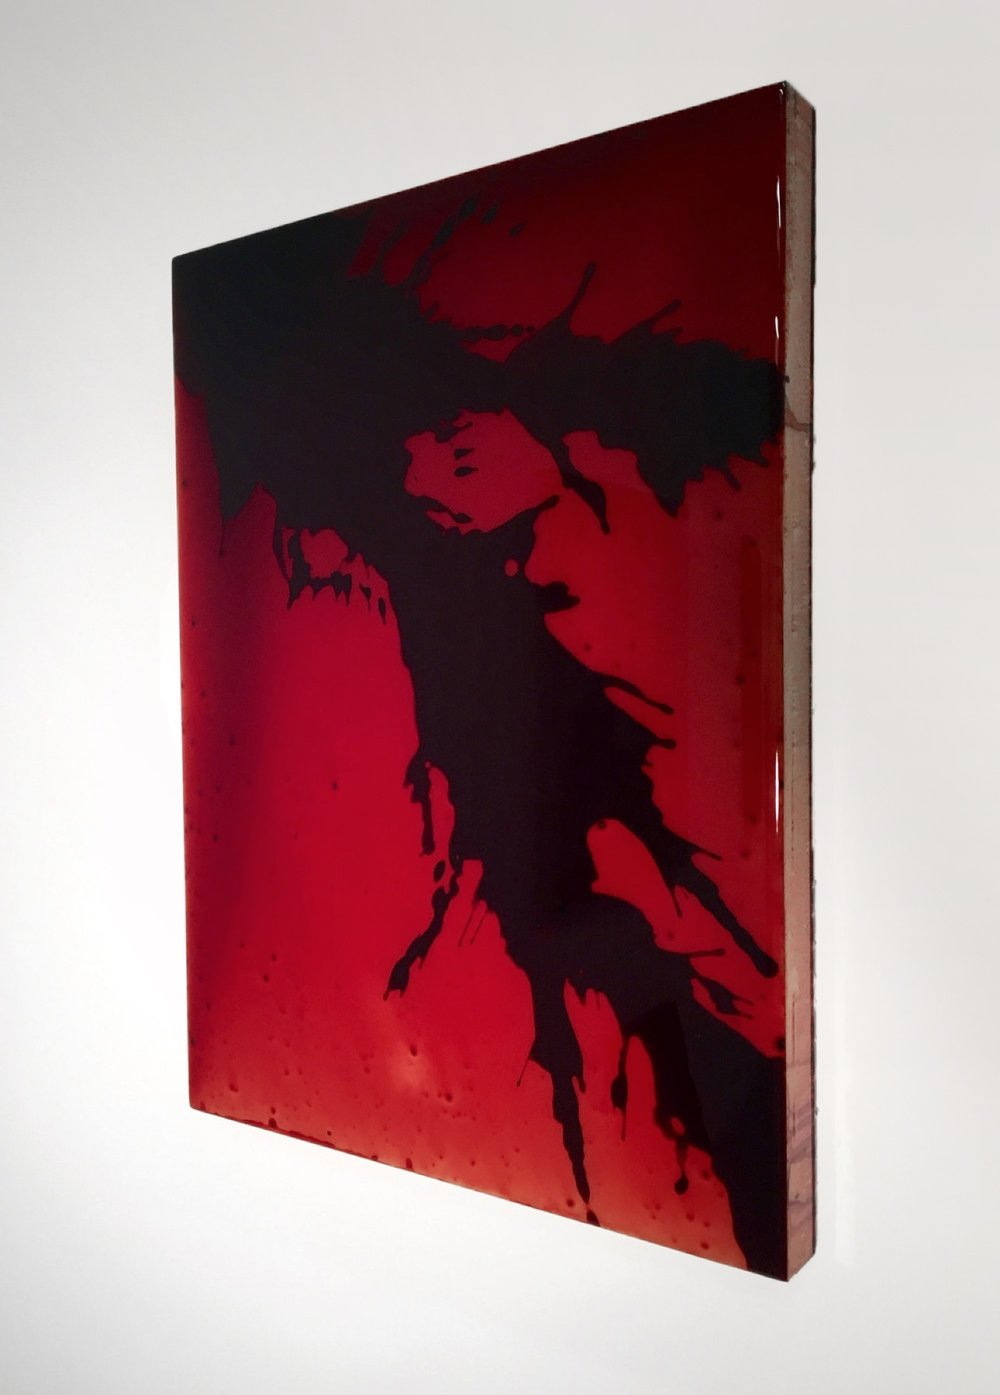 "FKRD 2, 2016 24 x 18 x 3"" blood, preserved on plexiglass, UV resin"